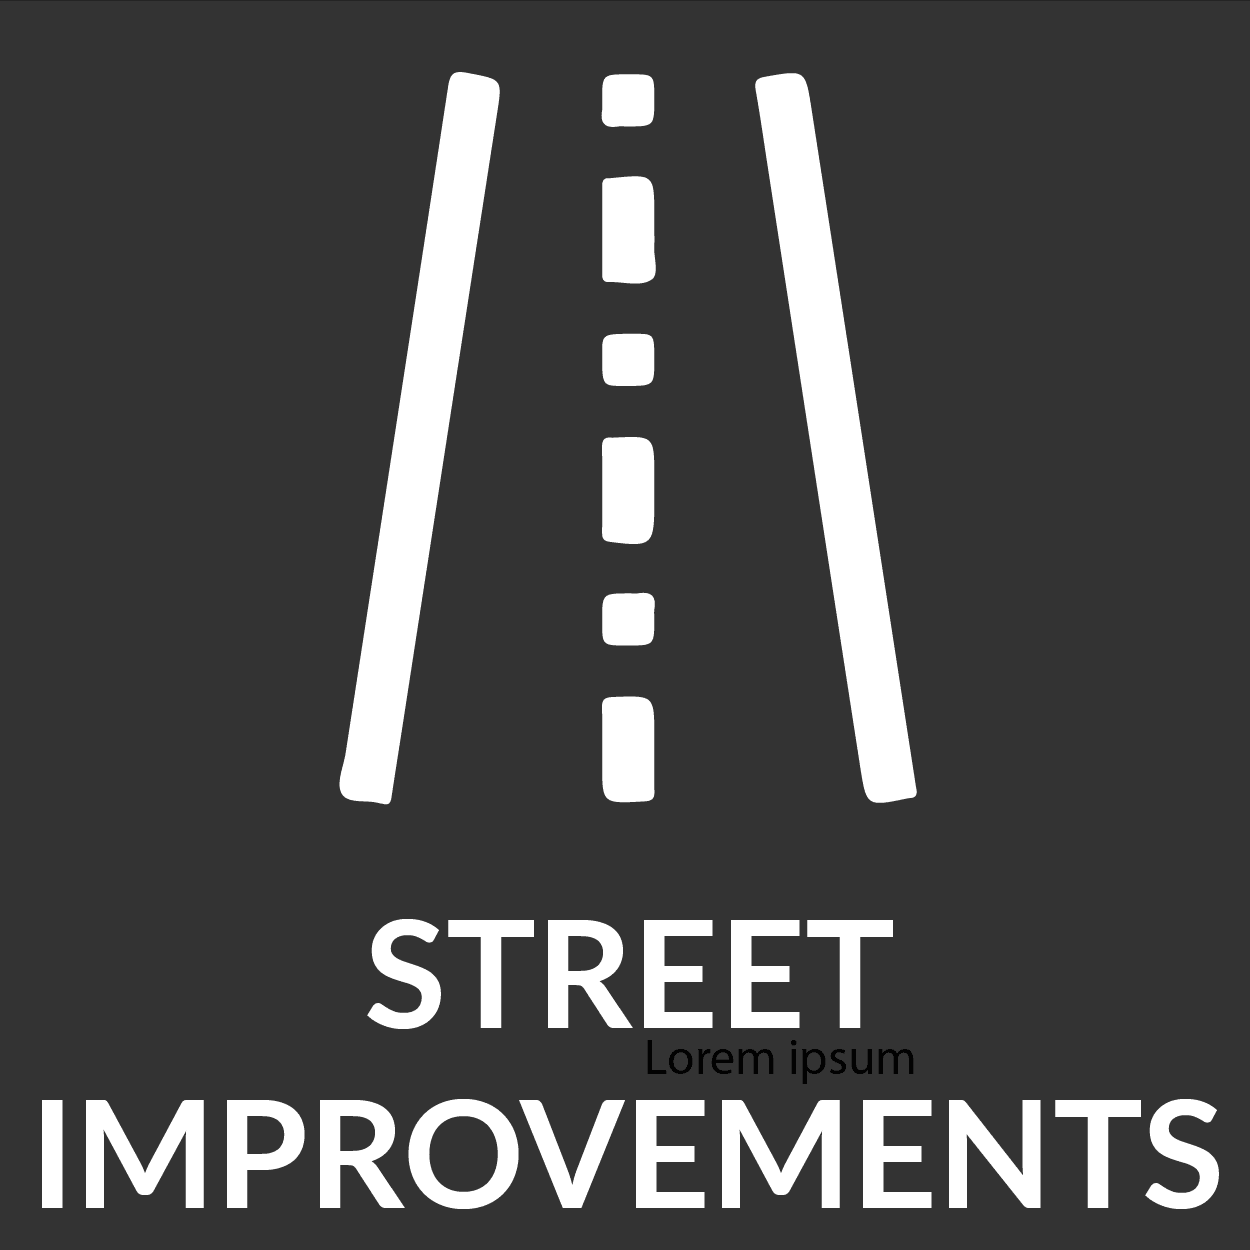 Street Improvements